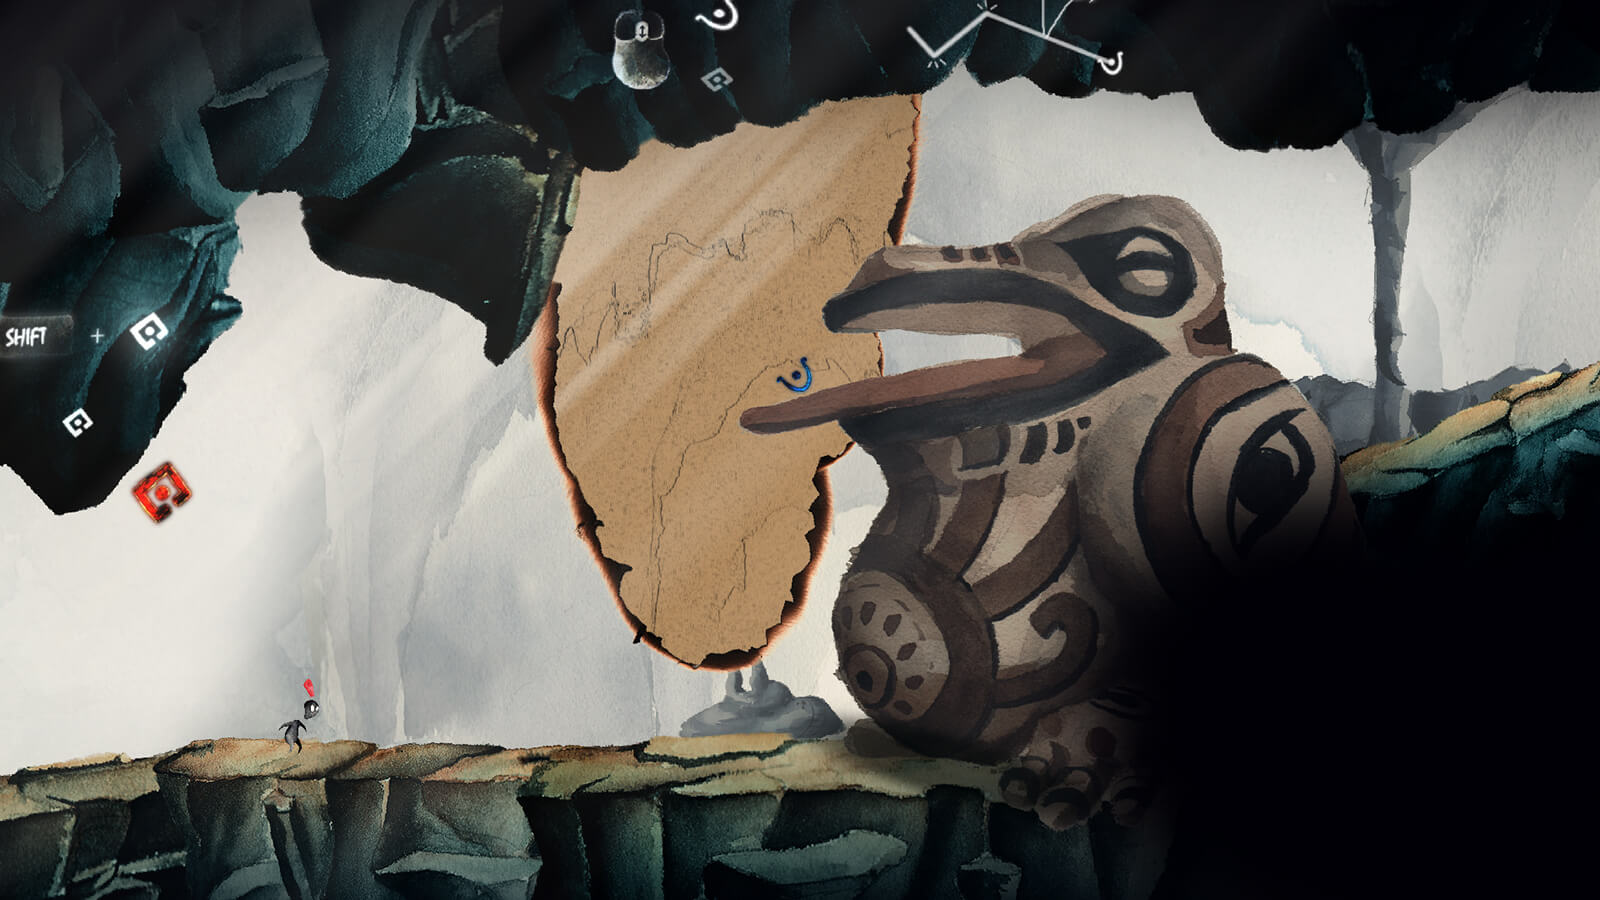 A 2D painted cave scene in which a small black figure's path is barred by a giant, ornate stone frog statue.